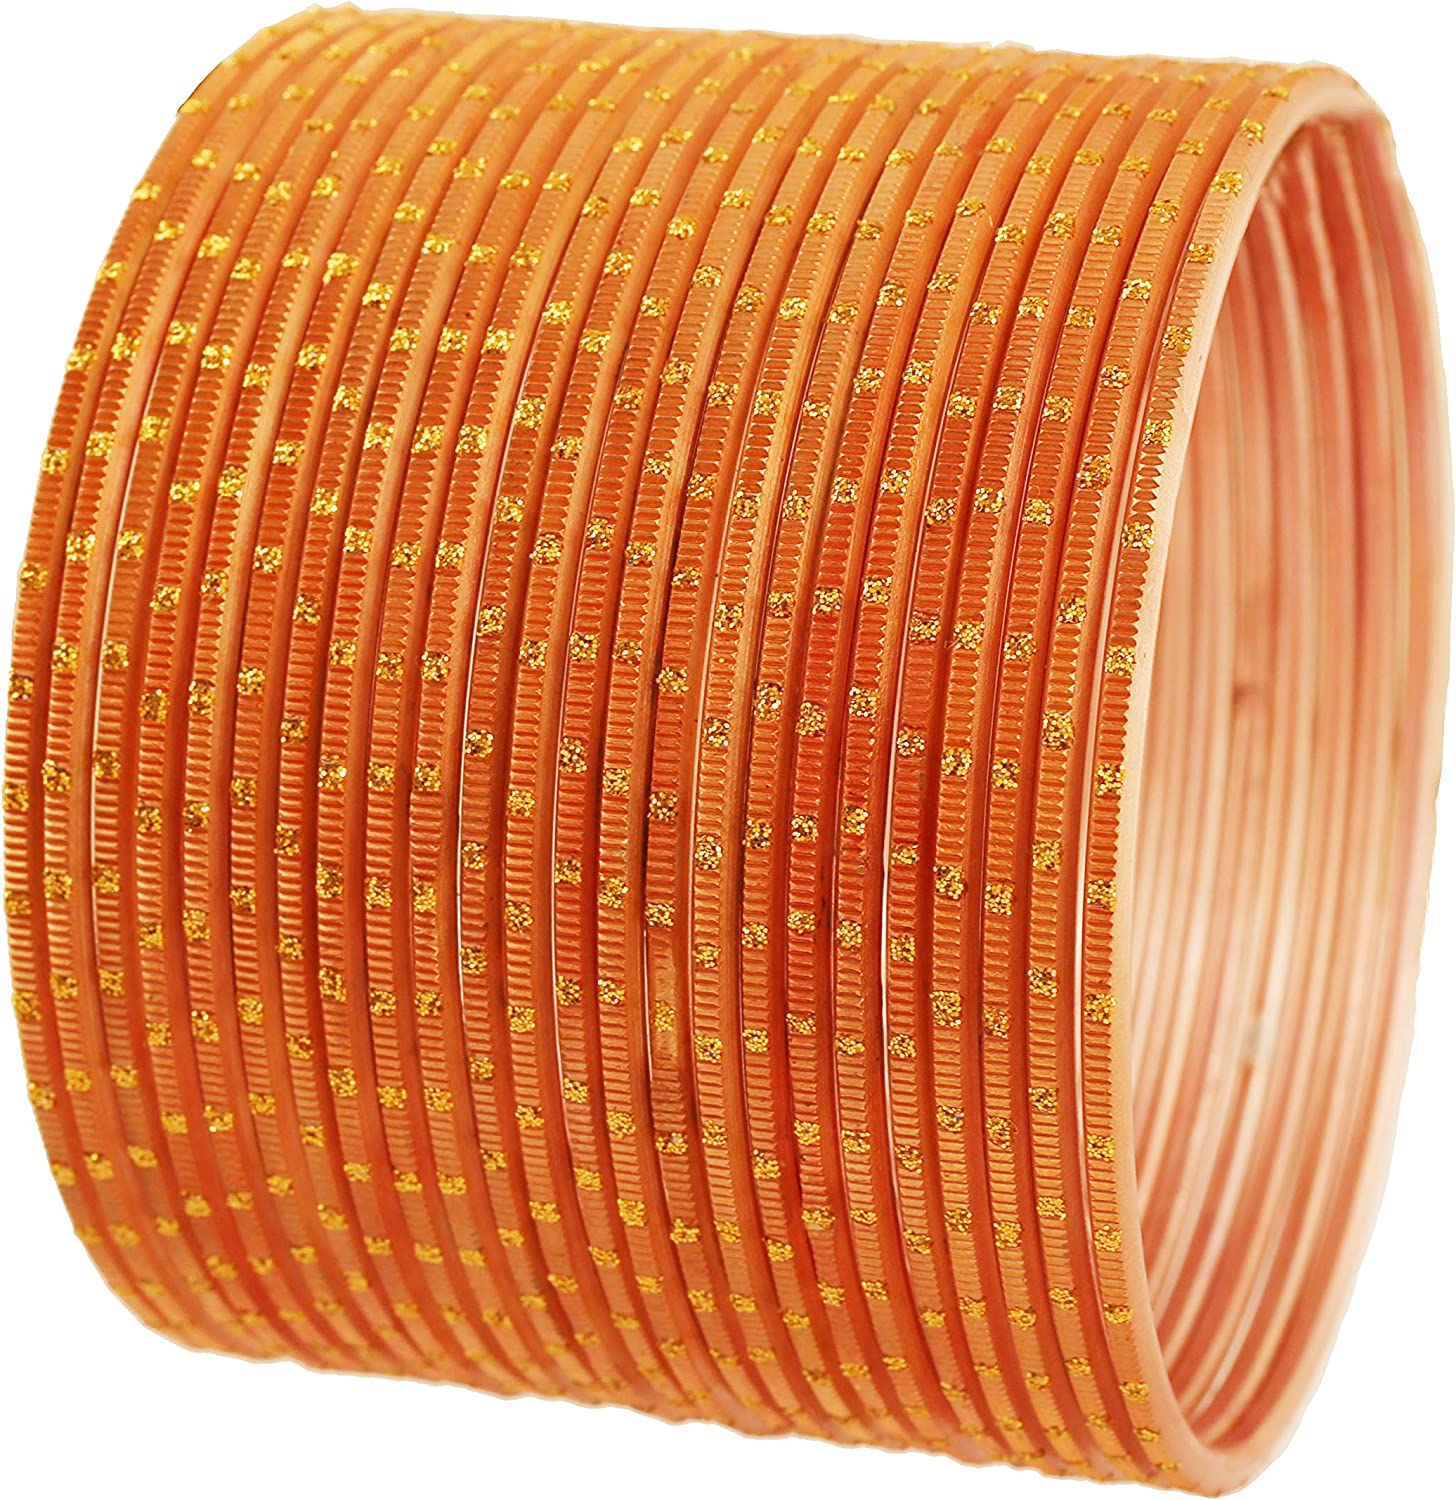 Touchstone Indian Bollywood Pretty Fashion Golden Dots Gorgeous Vintage Textured Color Attractive Designer Jewelry Bangle Bracelets for Women.